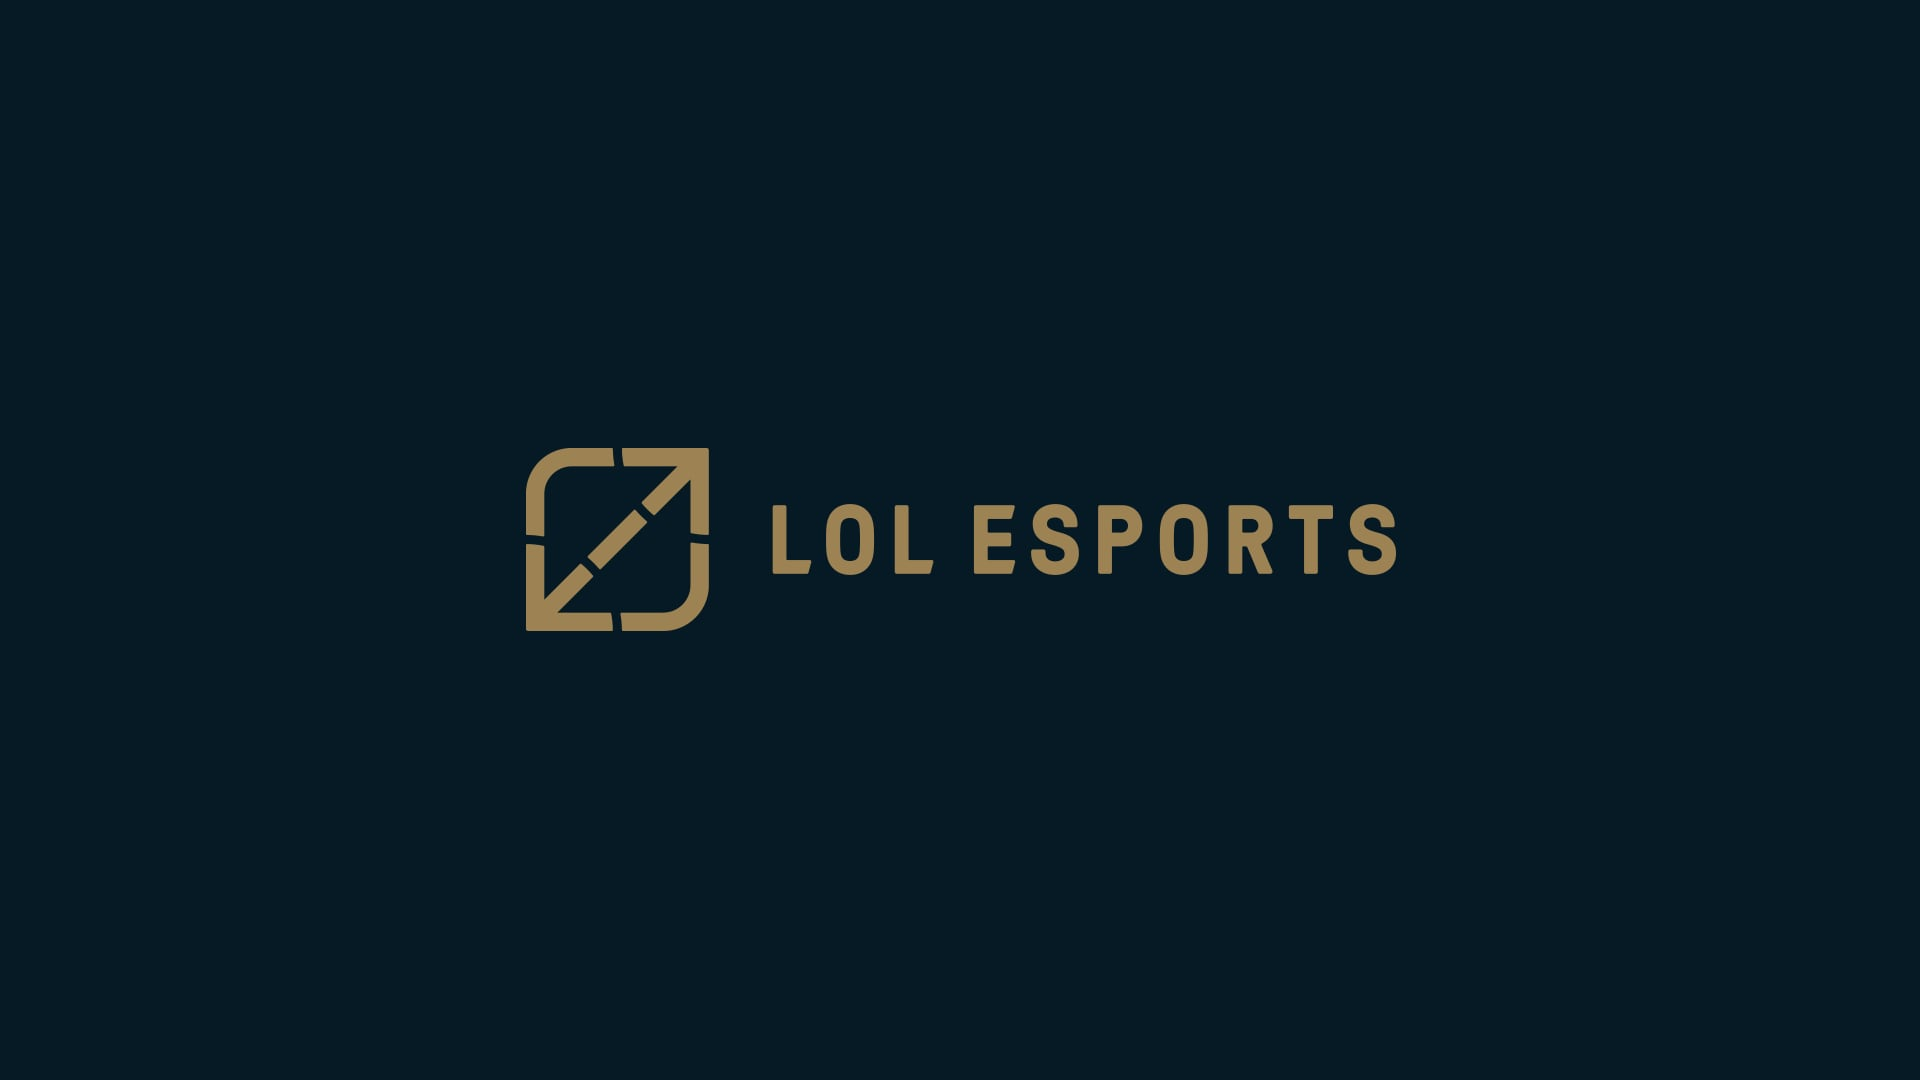 LoLEsports_option1